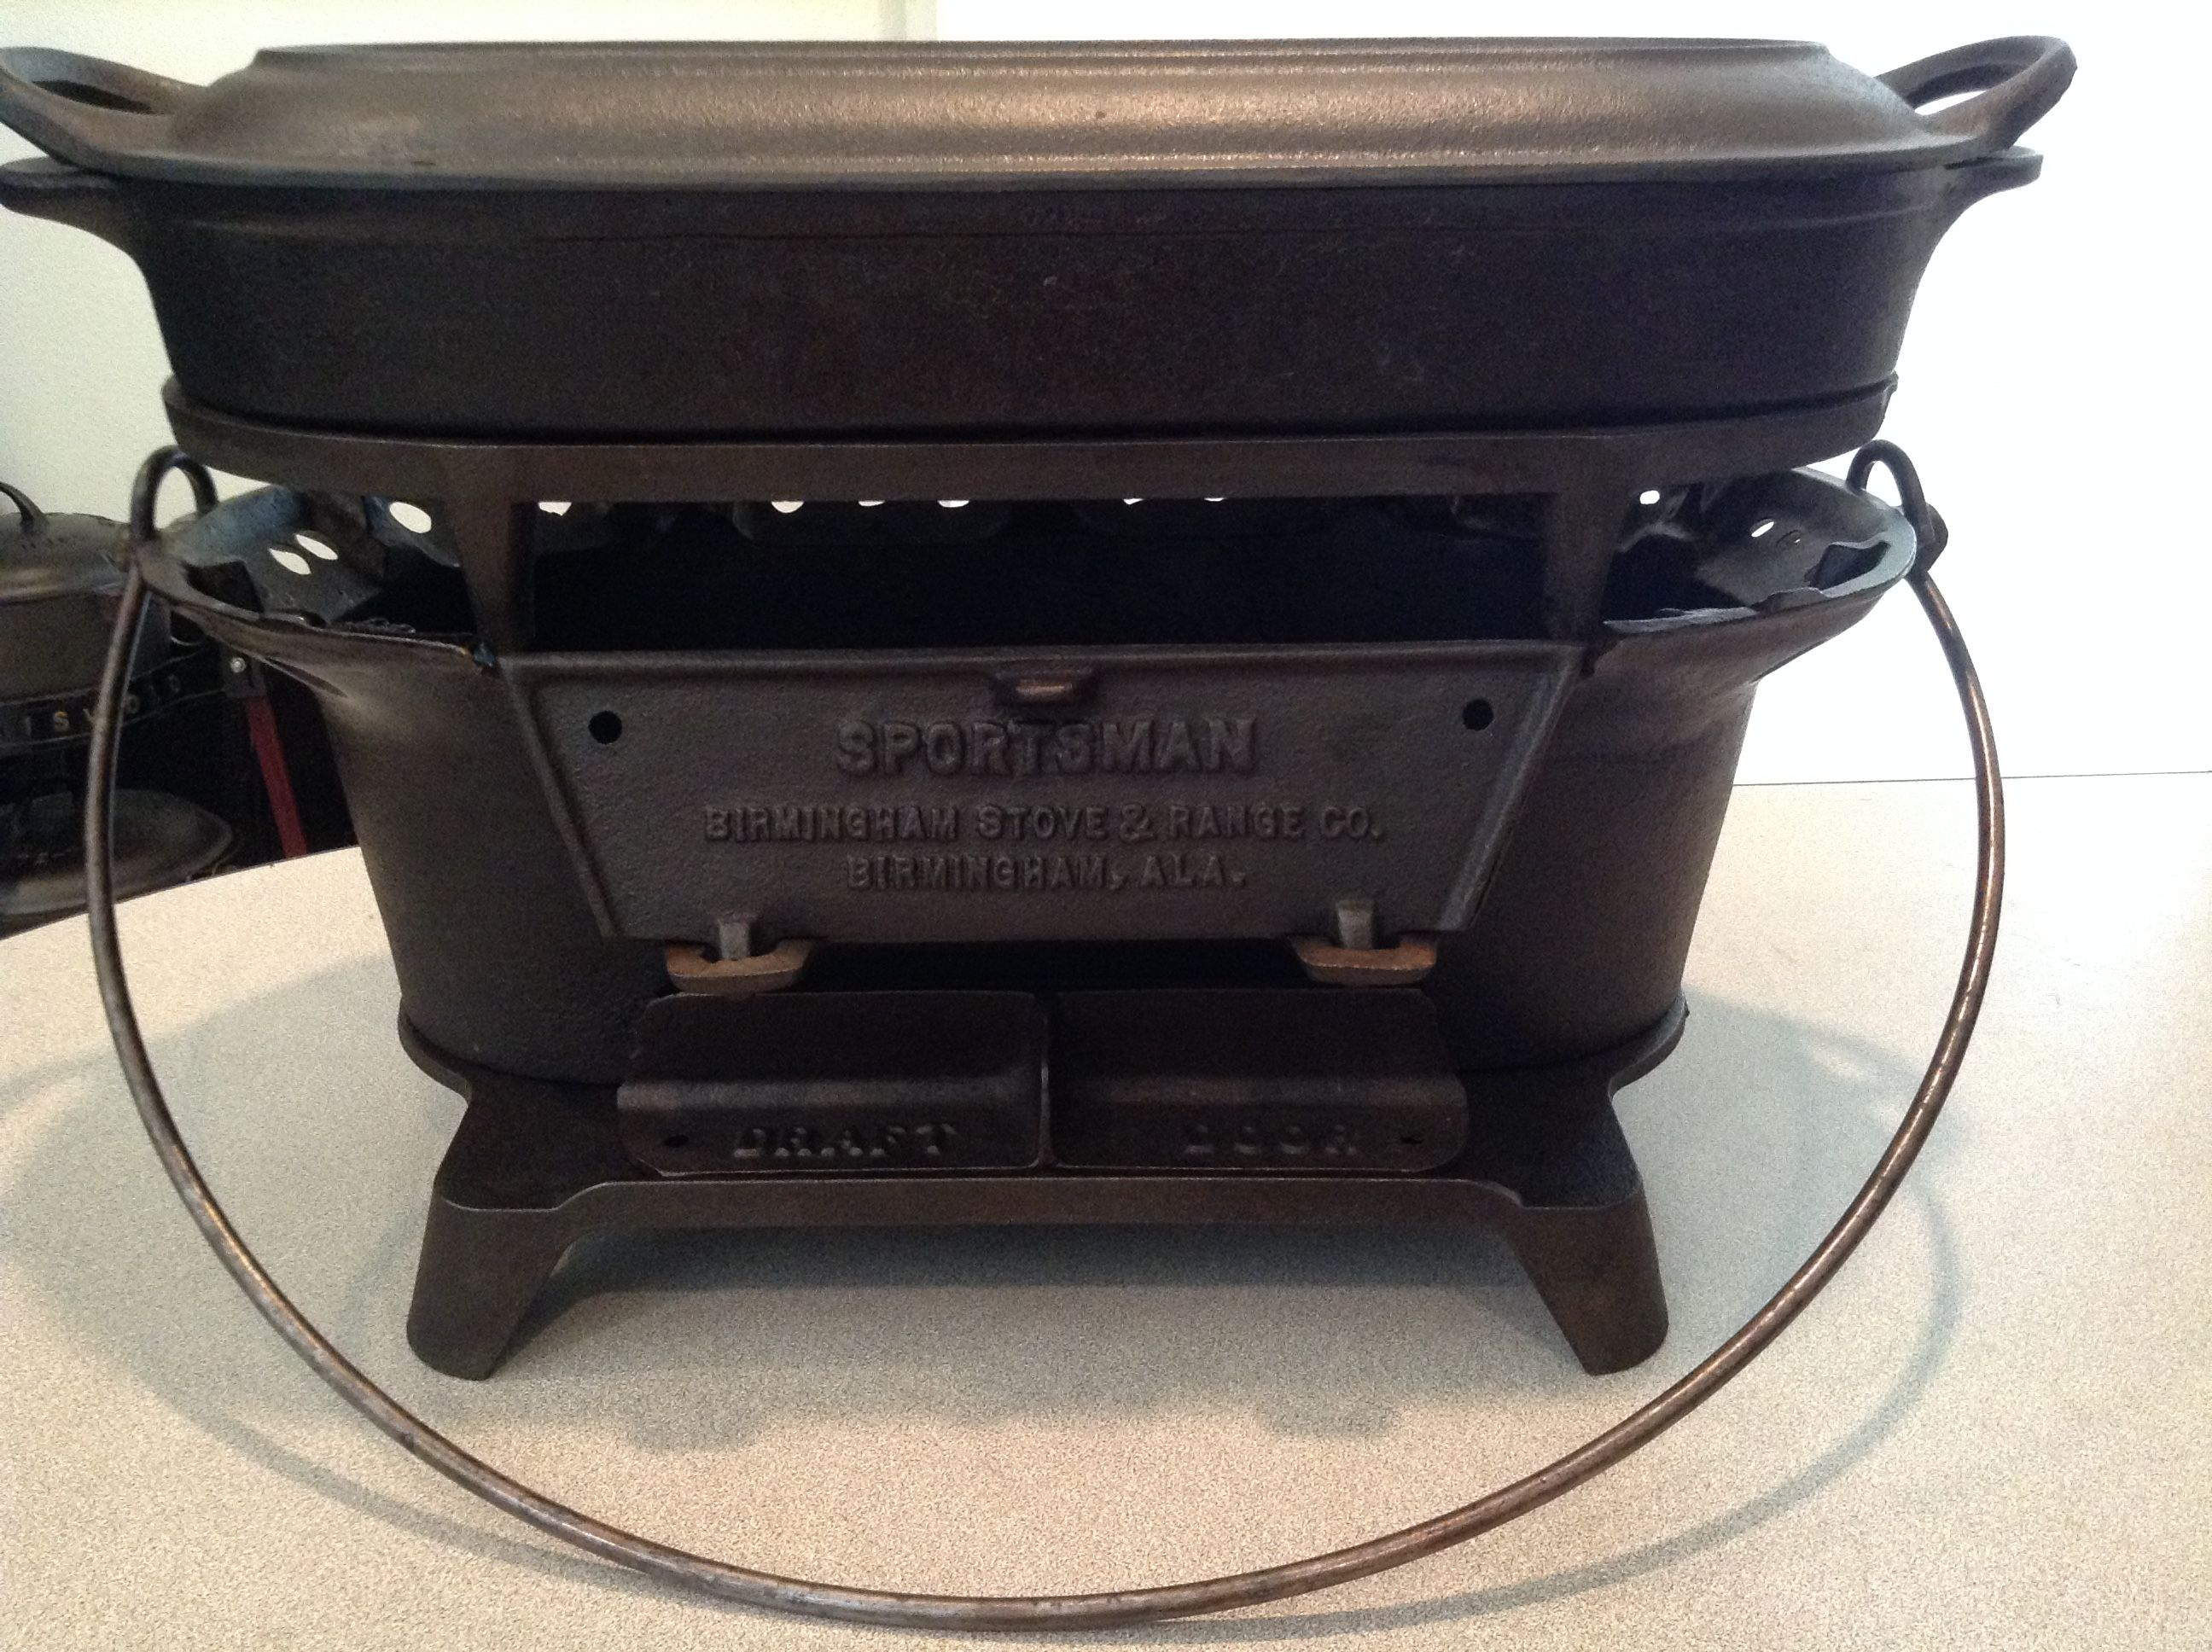 Co color cast cookware - Birmingham Stove And Range Sportsman Cooker With Griddle Lid